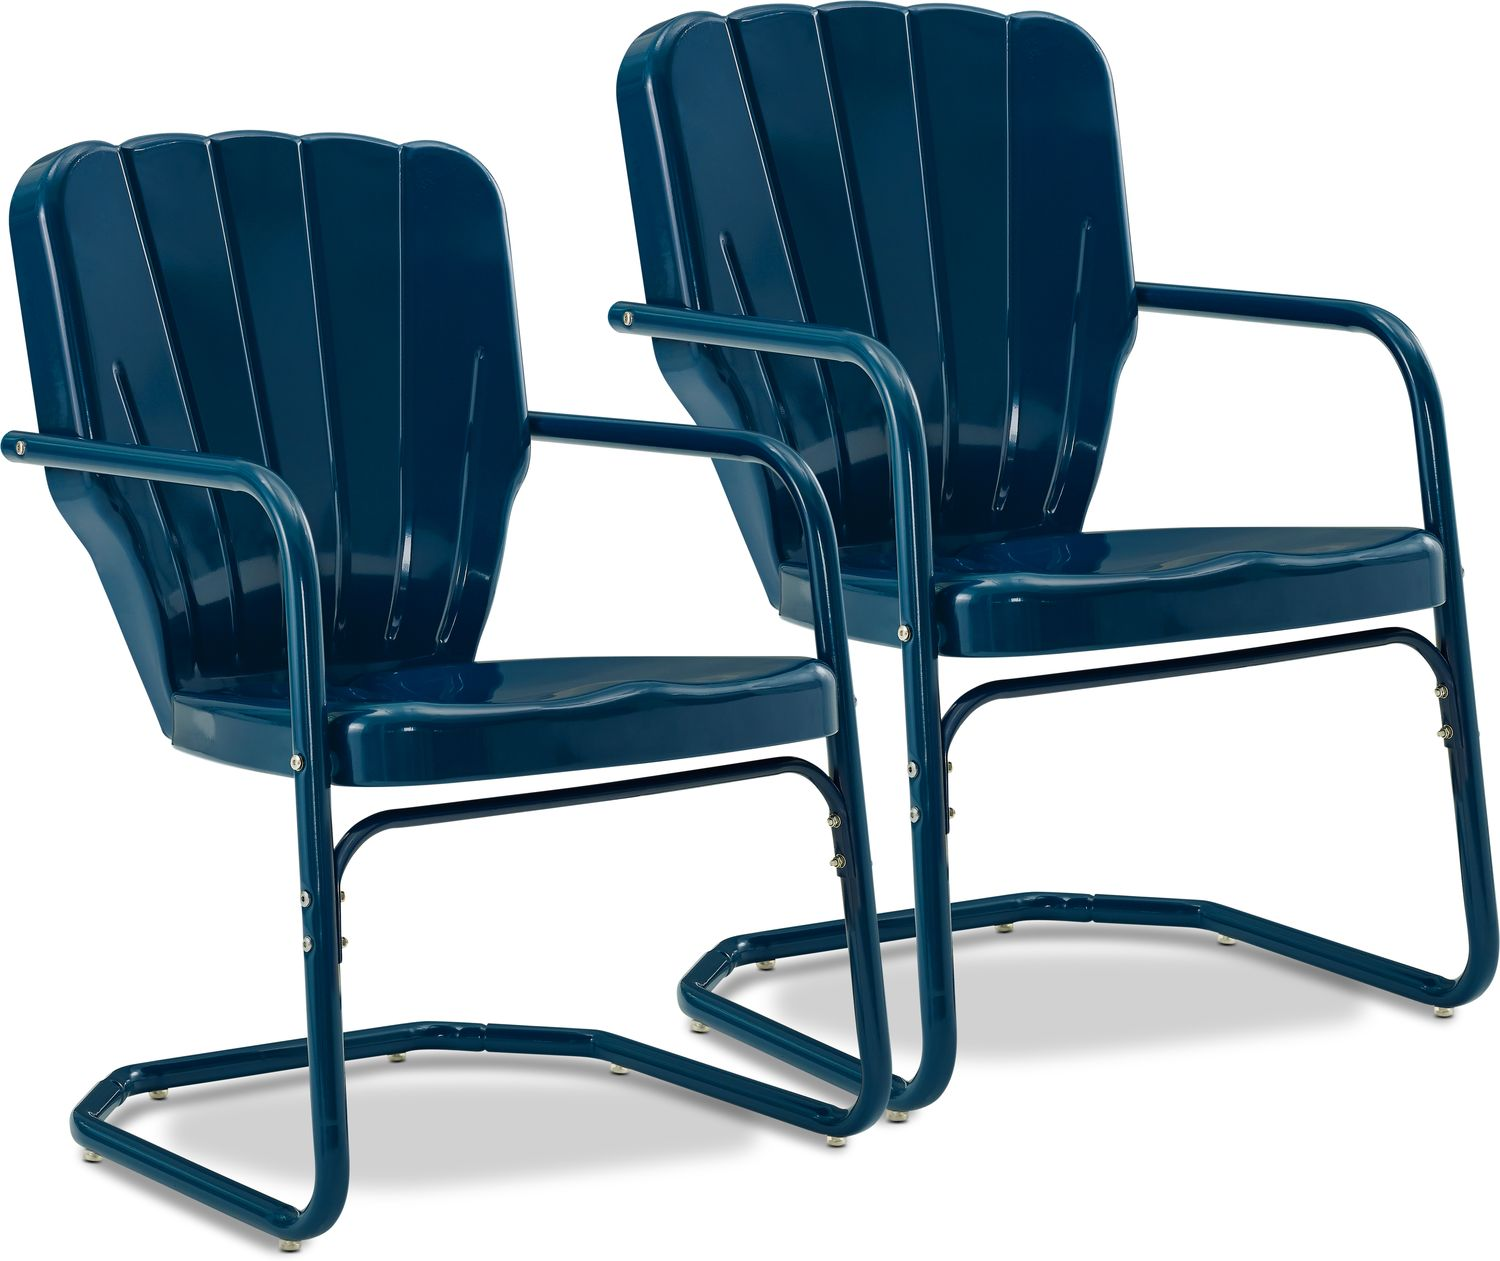 Outdoor Furniture - Jack Set of 2 Outdoor Chairs